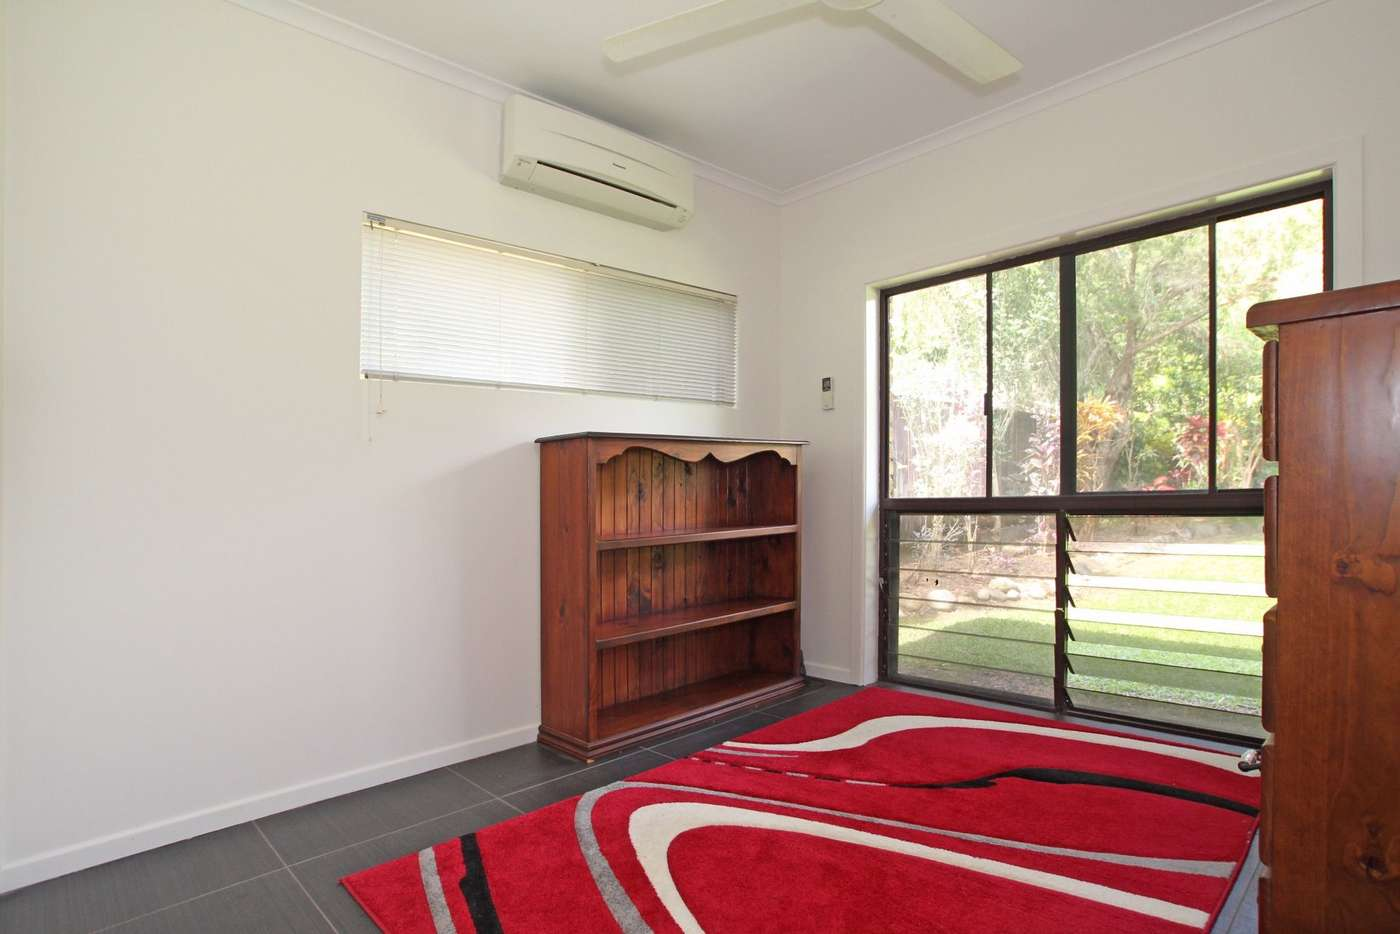 Seventh view of Homely house listing, 52 Hobson Drive, Brinsmead QLD 4870